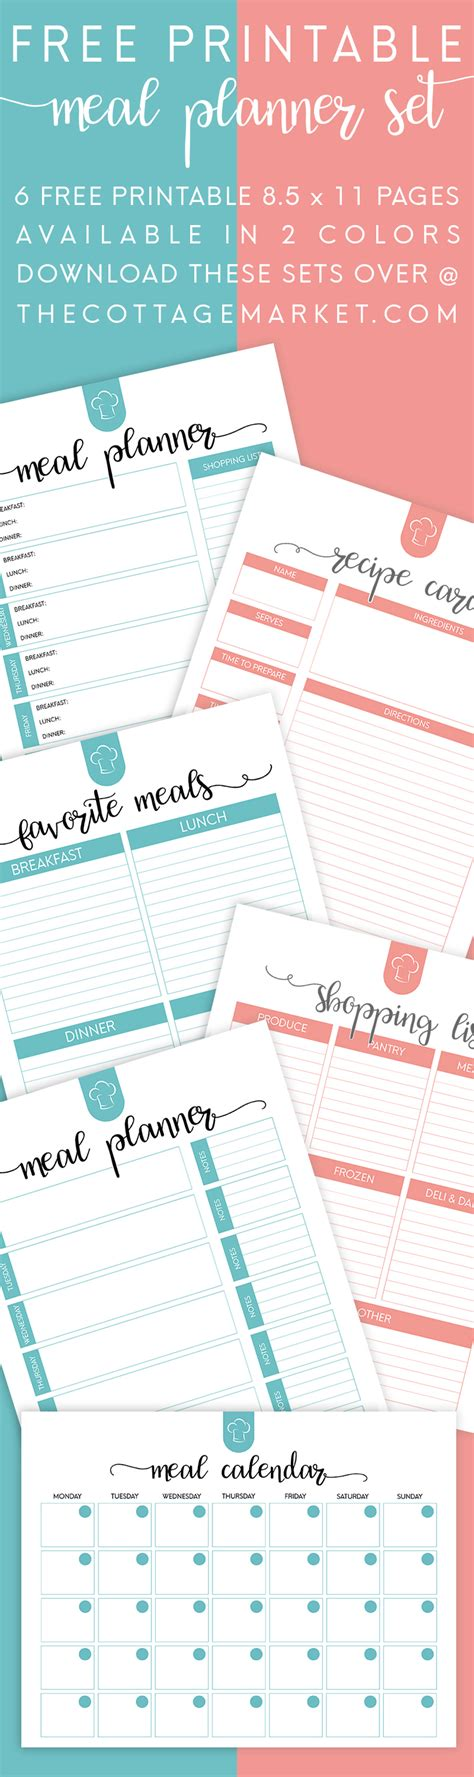 free printable planner set free printable meal planner set the cottage market